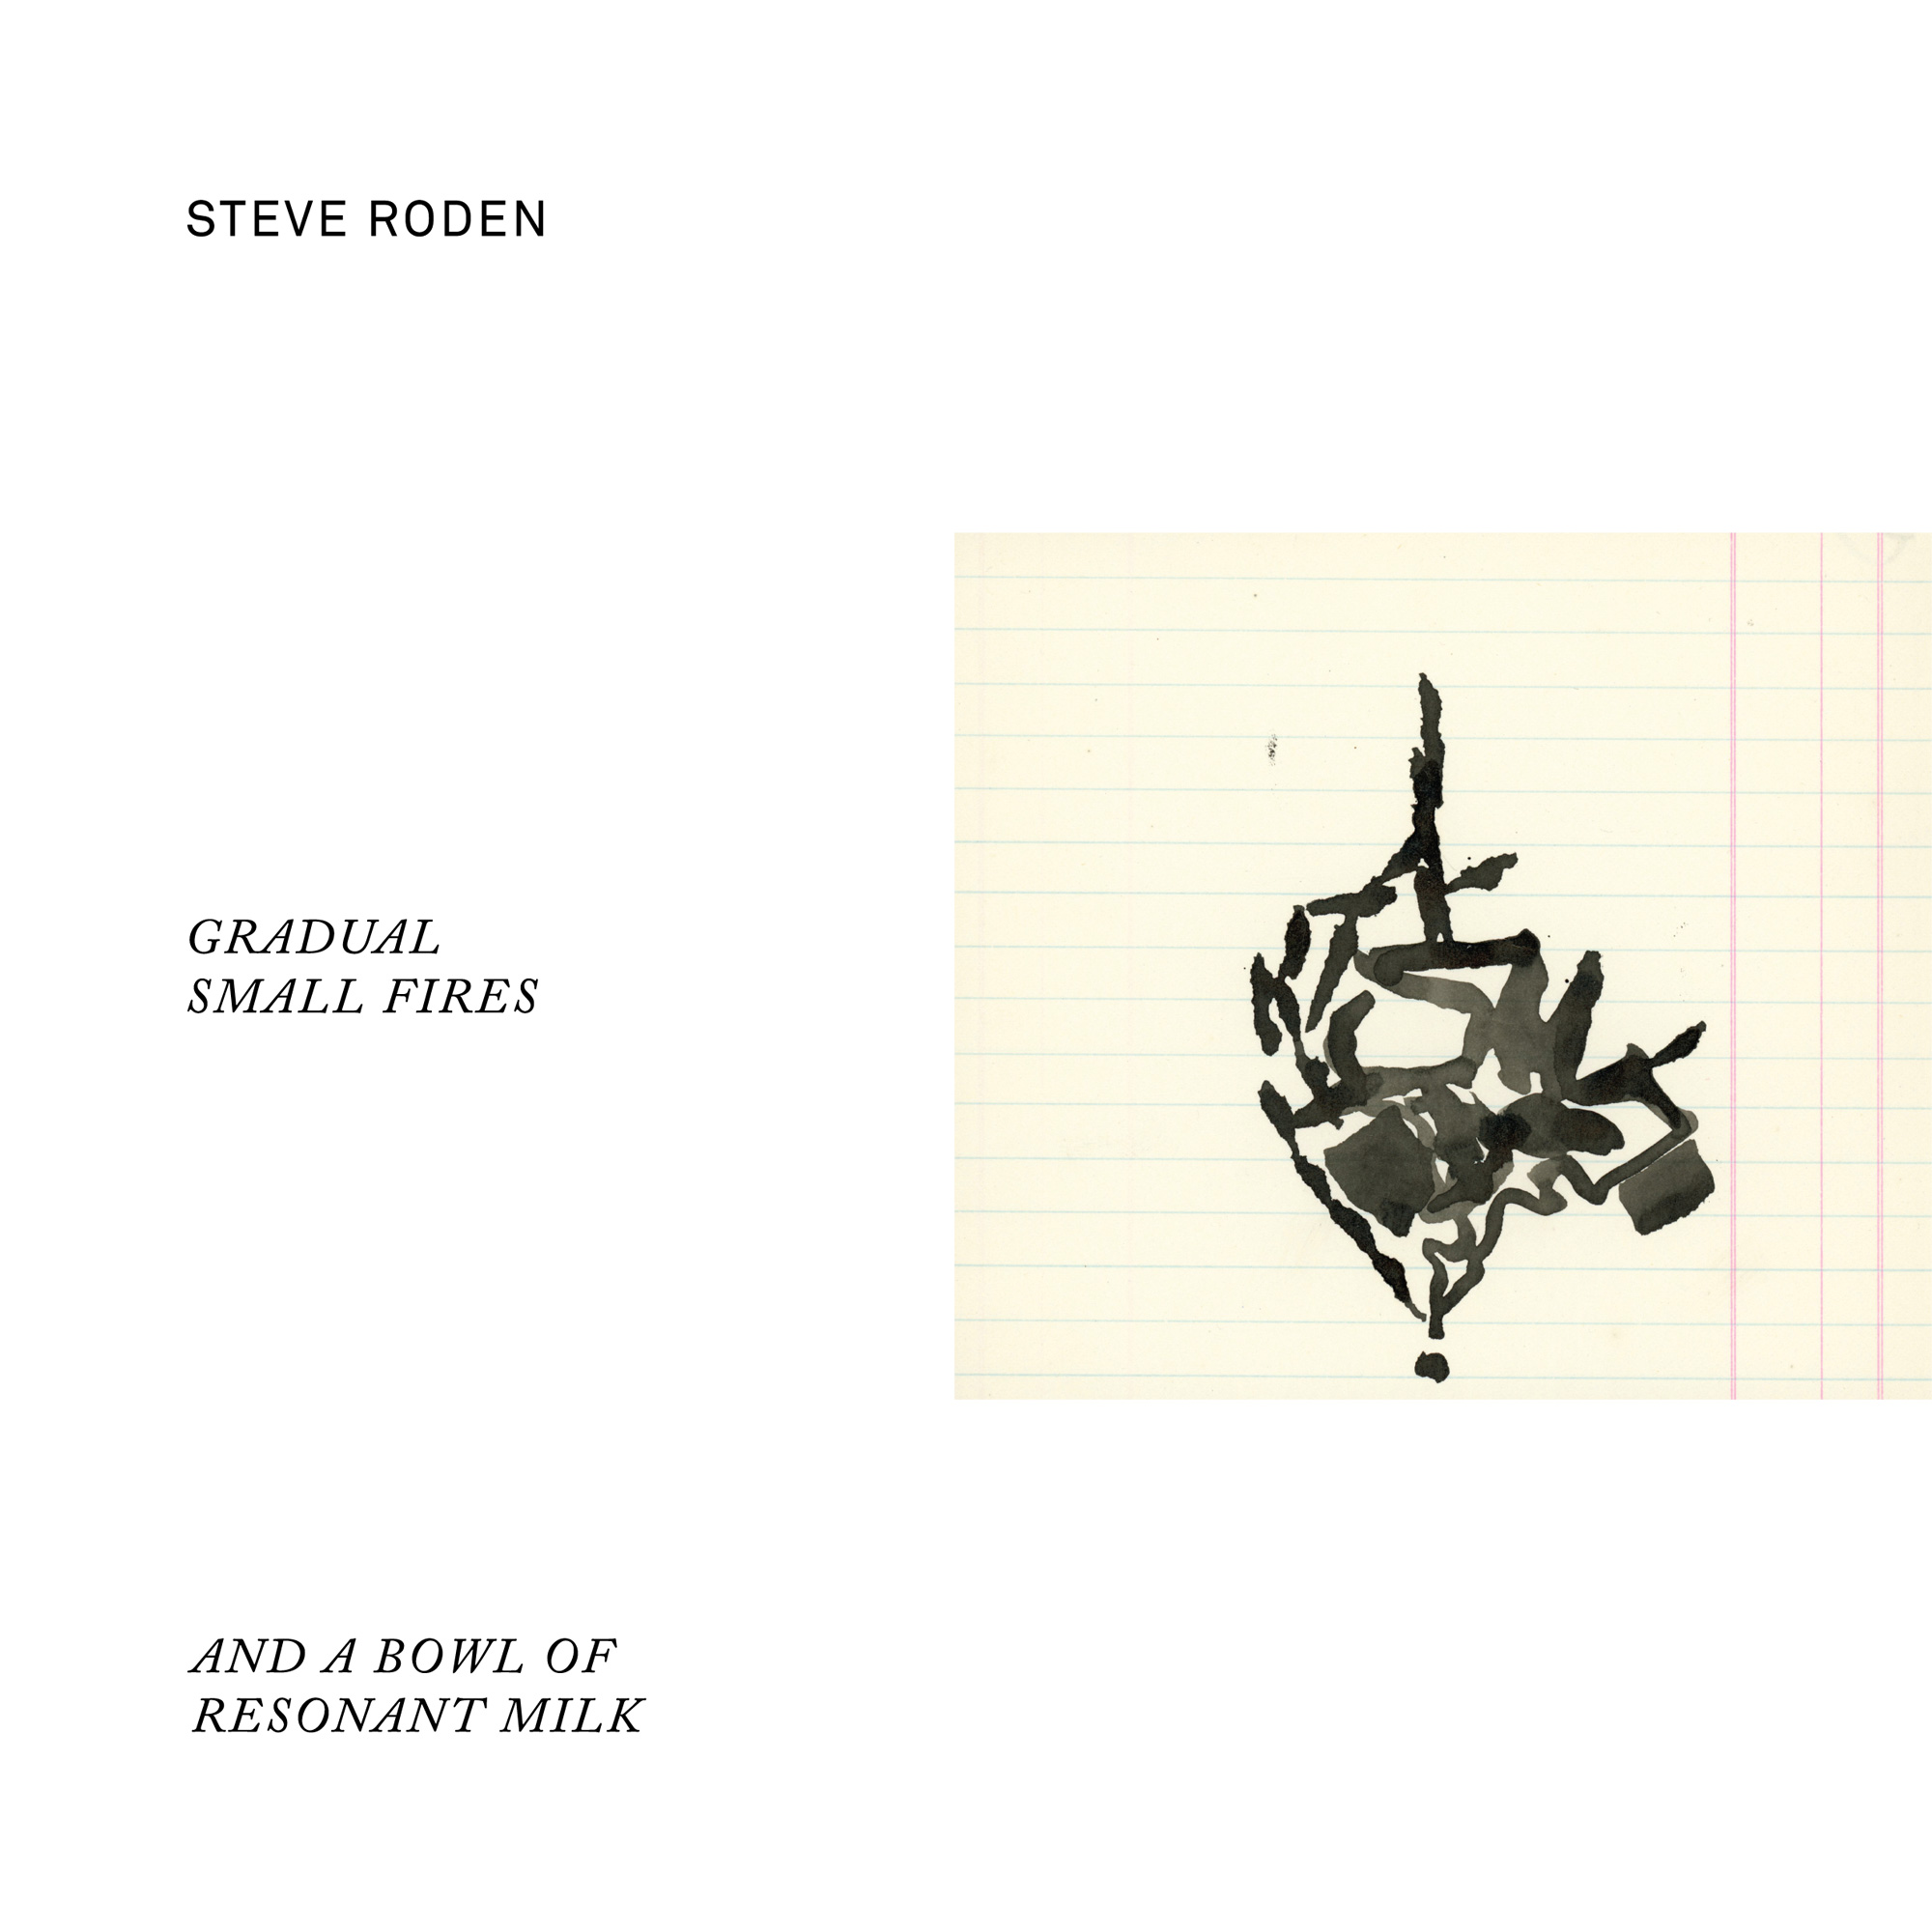 Steve Roden — Gradual Small Fires (And A Bowl Of Resonant Milk)